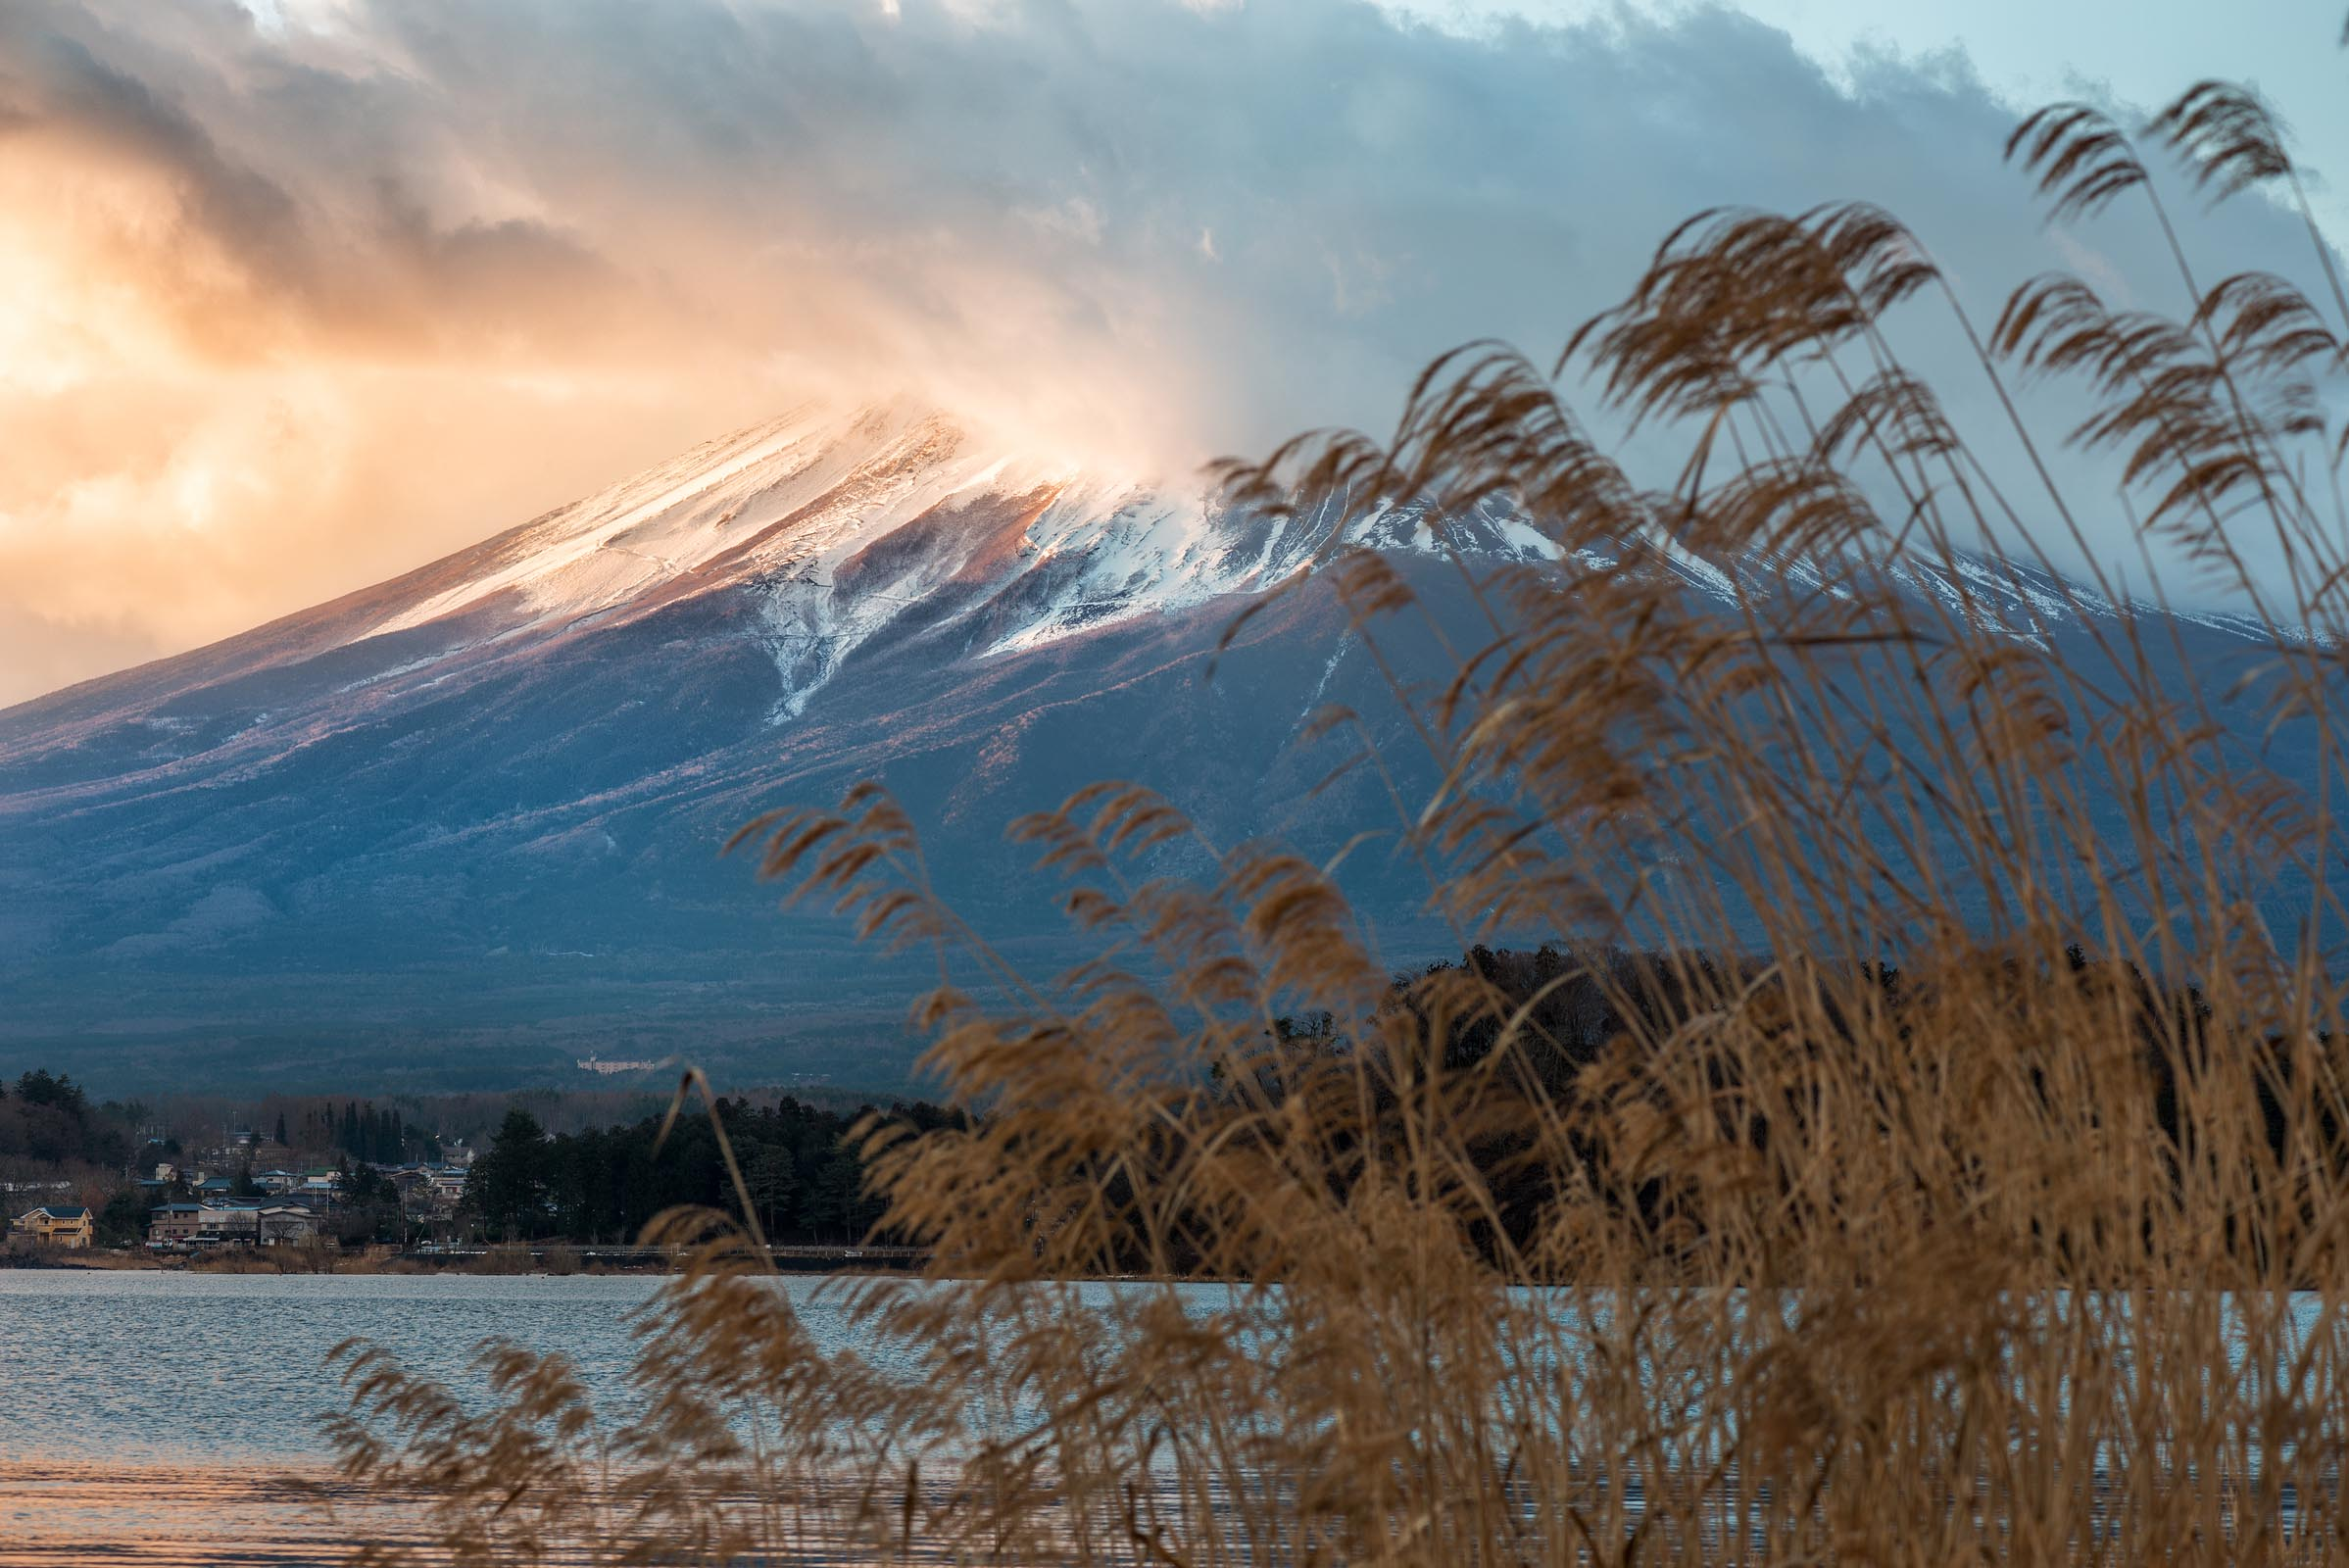 Photograph of Mt Fuji in Honshu, Japan by Brent Goldman Photography